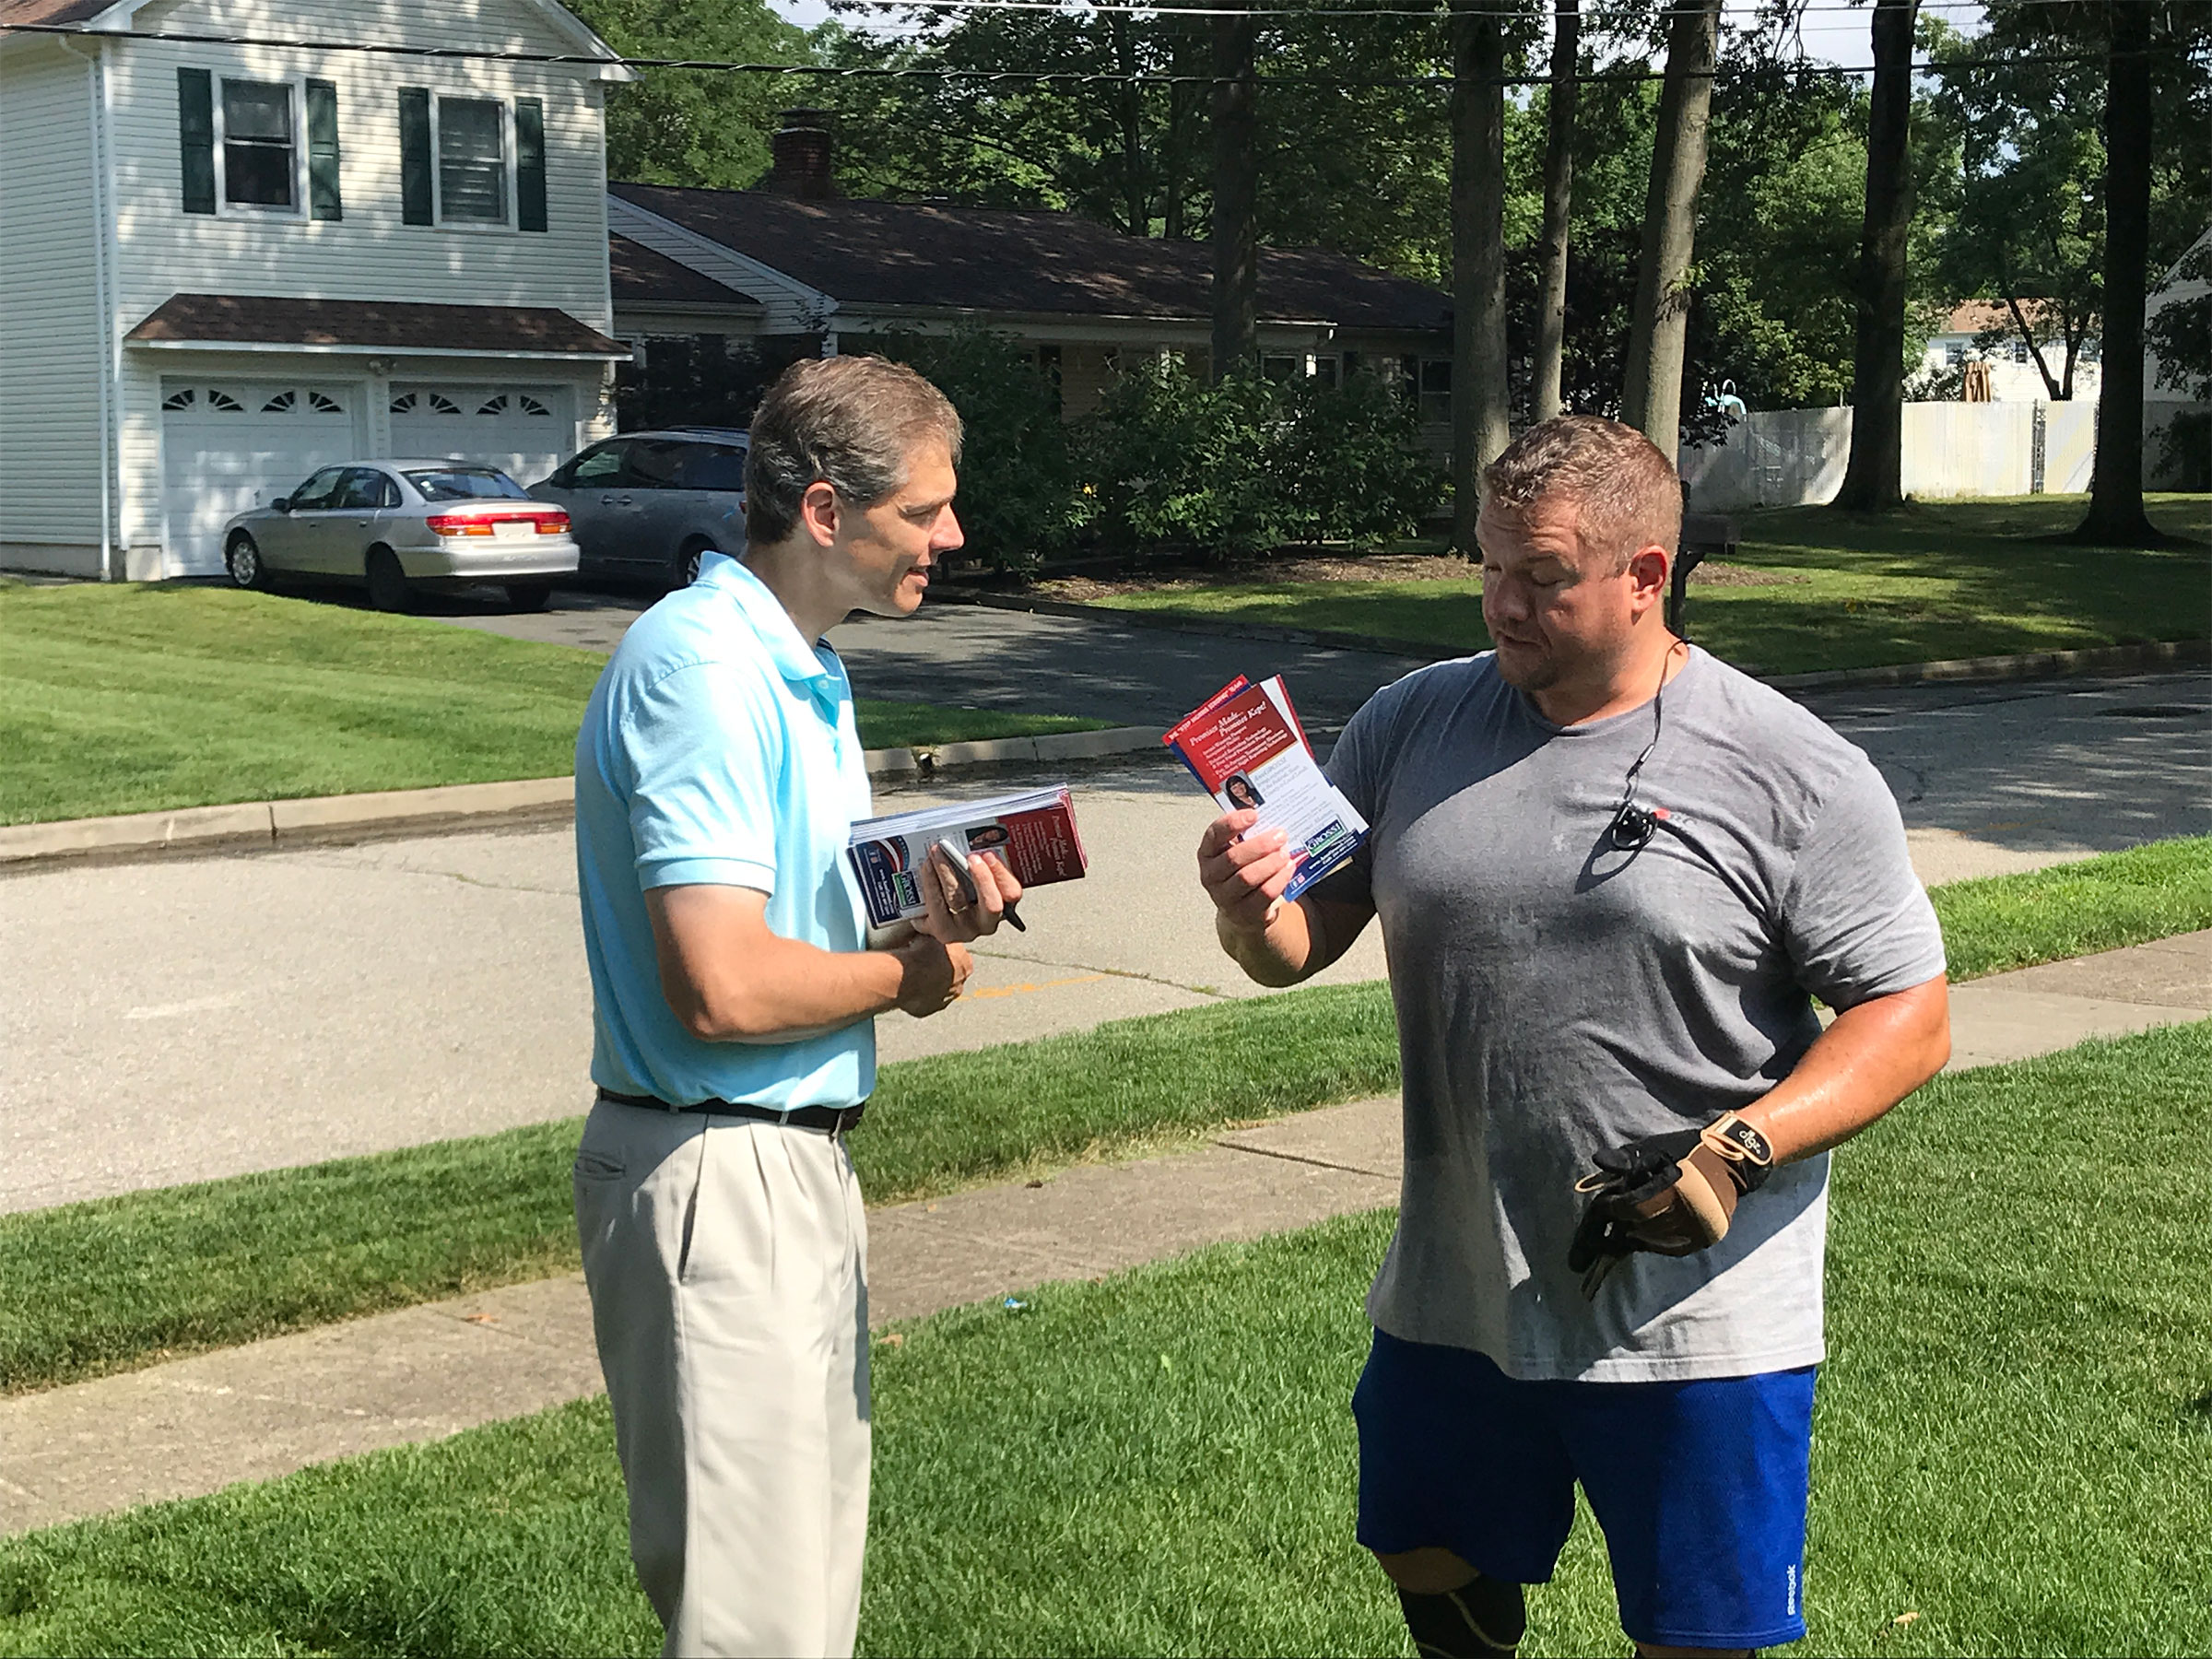 Republican state Assemblyman Jay Webber, left, who faces Sherrill in the fall, canvasses Saturday in Parsippany, N.J. (Simone Pathé/CQ Roll Call)